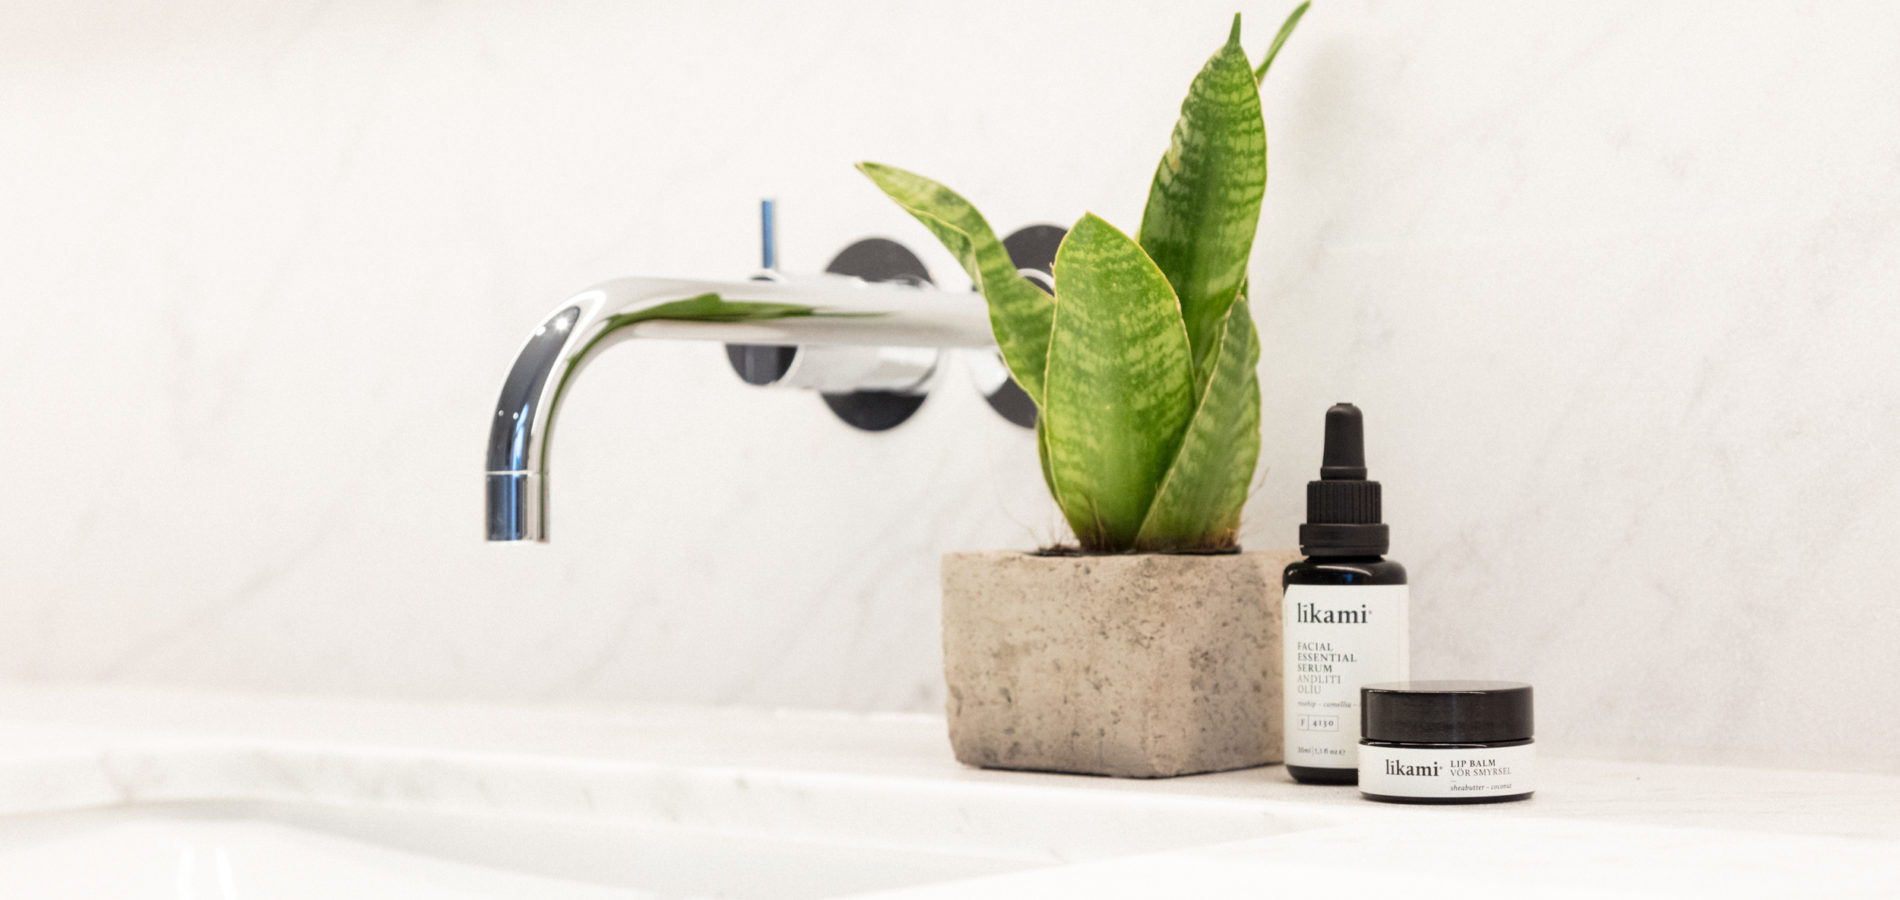 Likami: Superfood for your skin